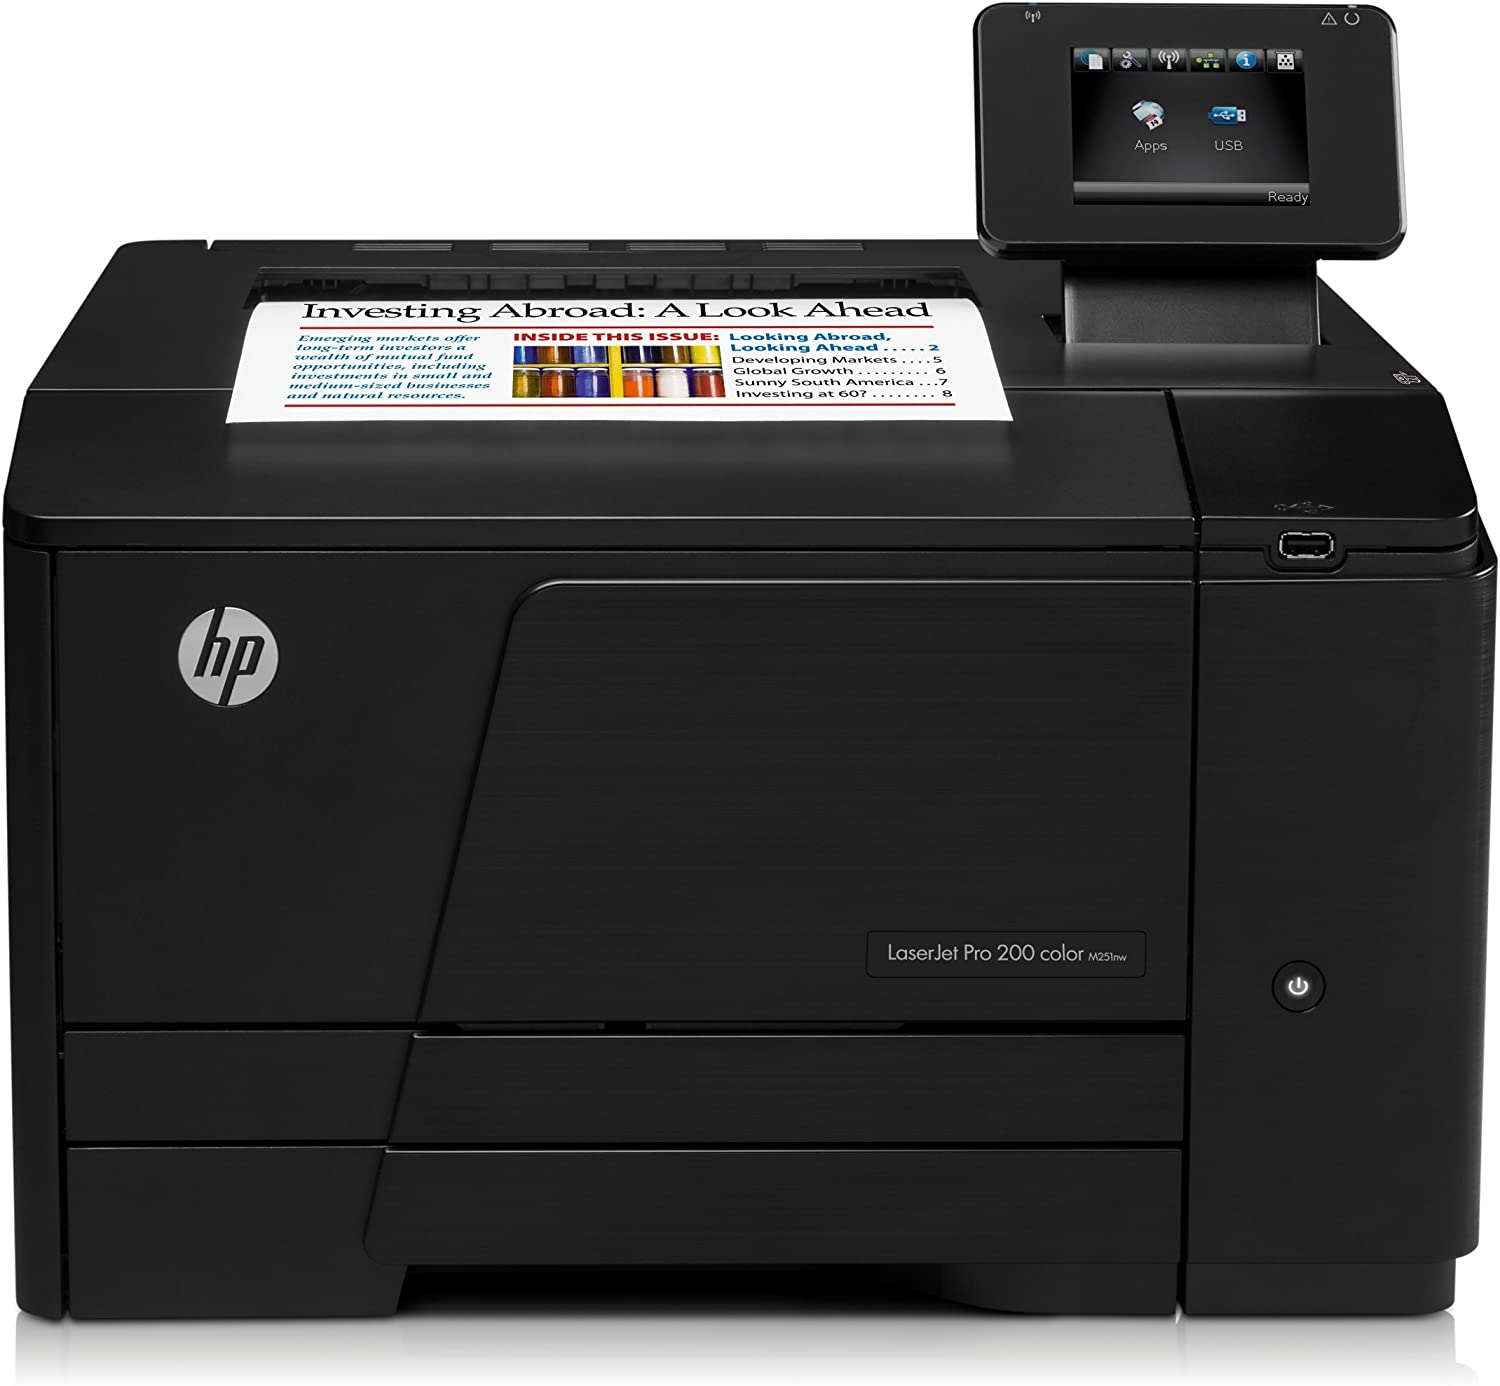 HP Color LaserJet Pro 200 M251NW M251 CF147A Color Laser Printer - (Renewed)